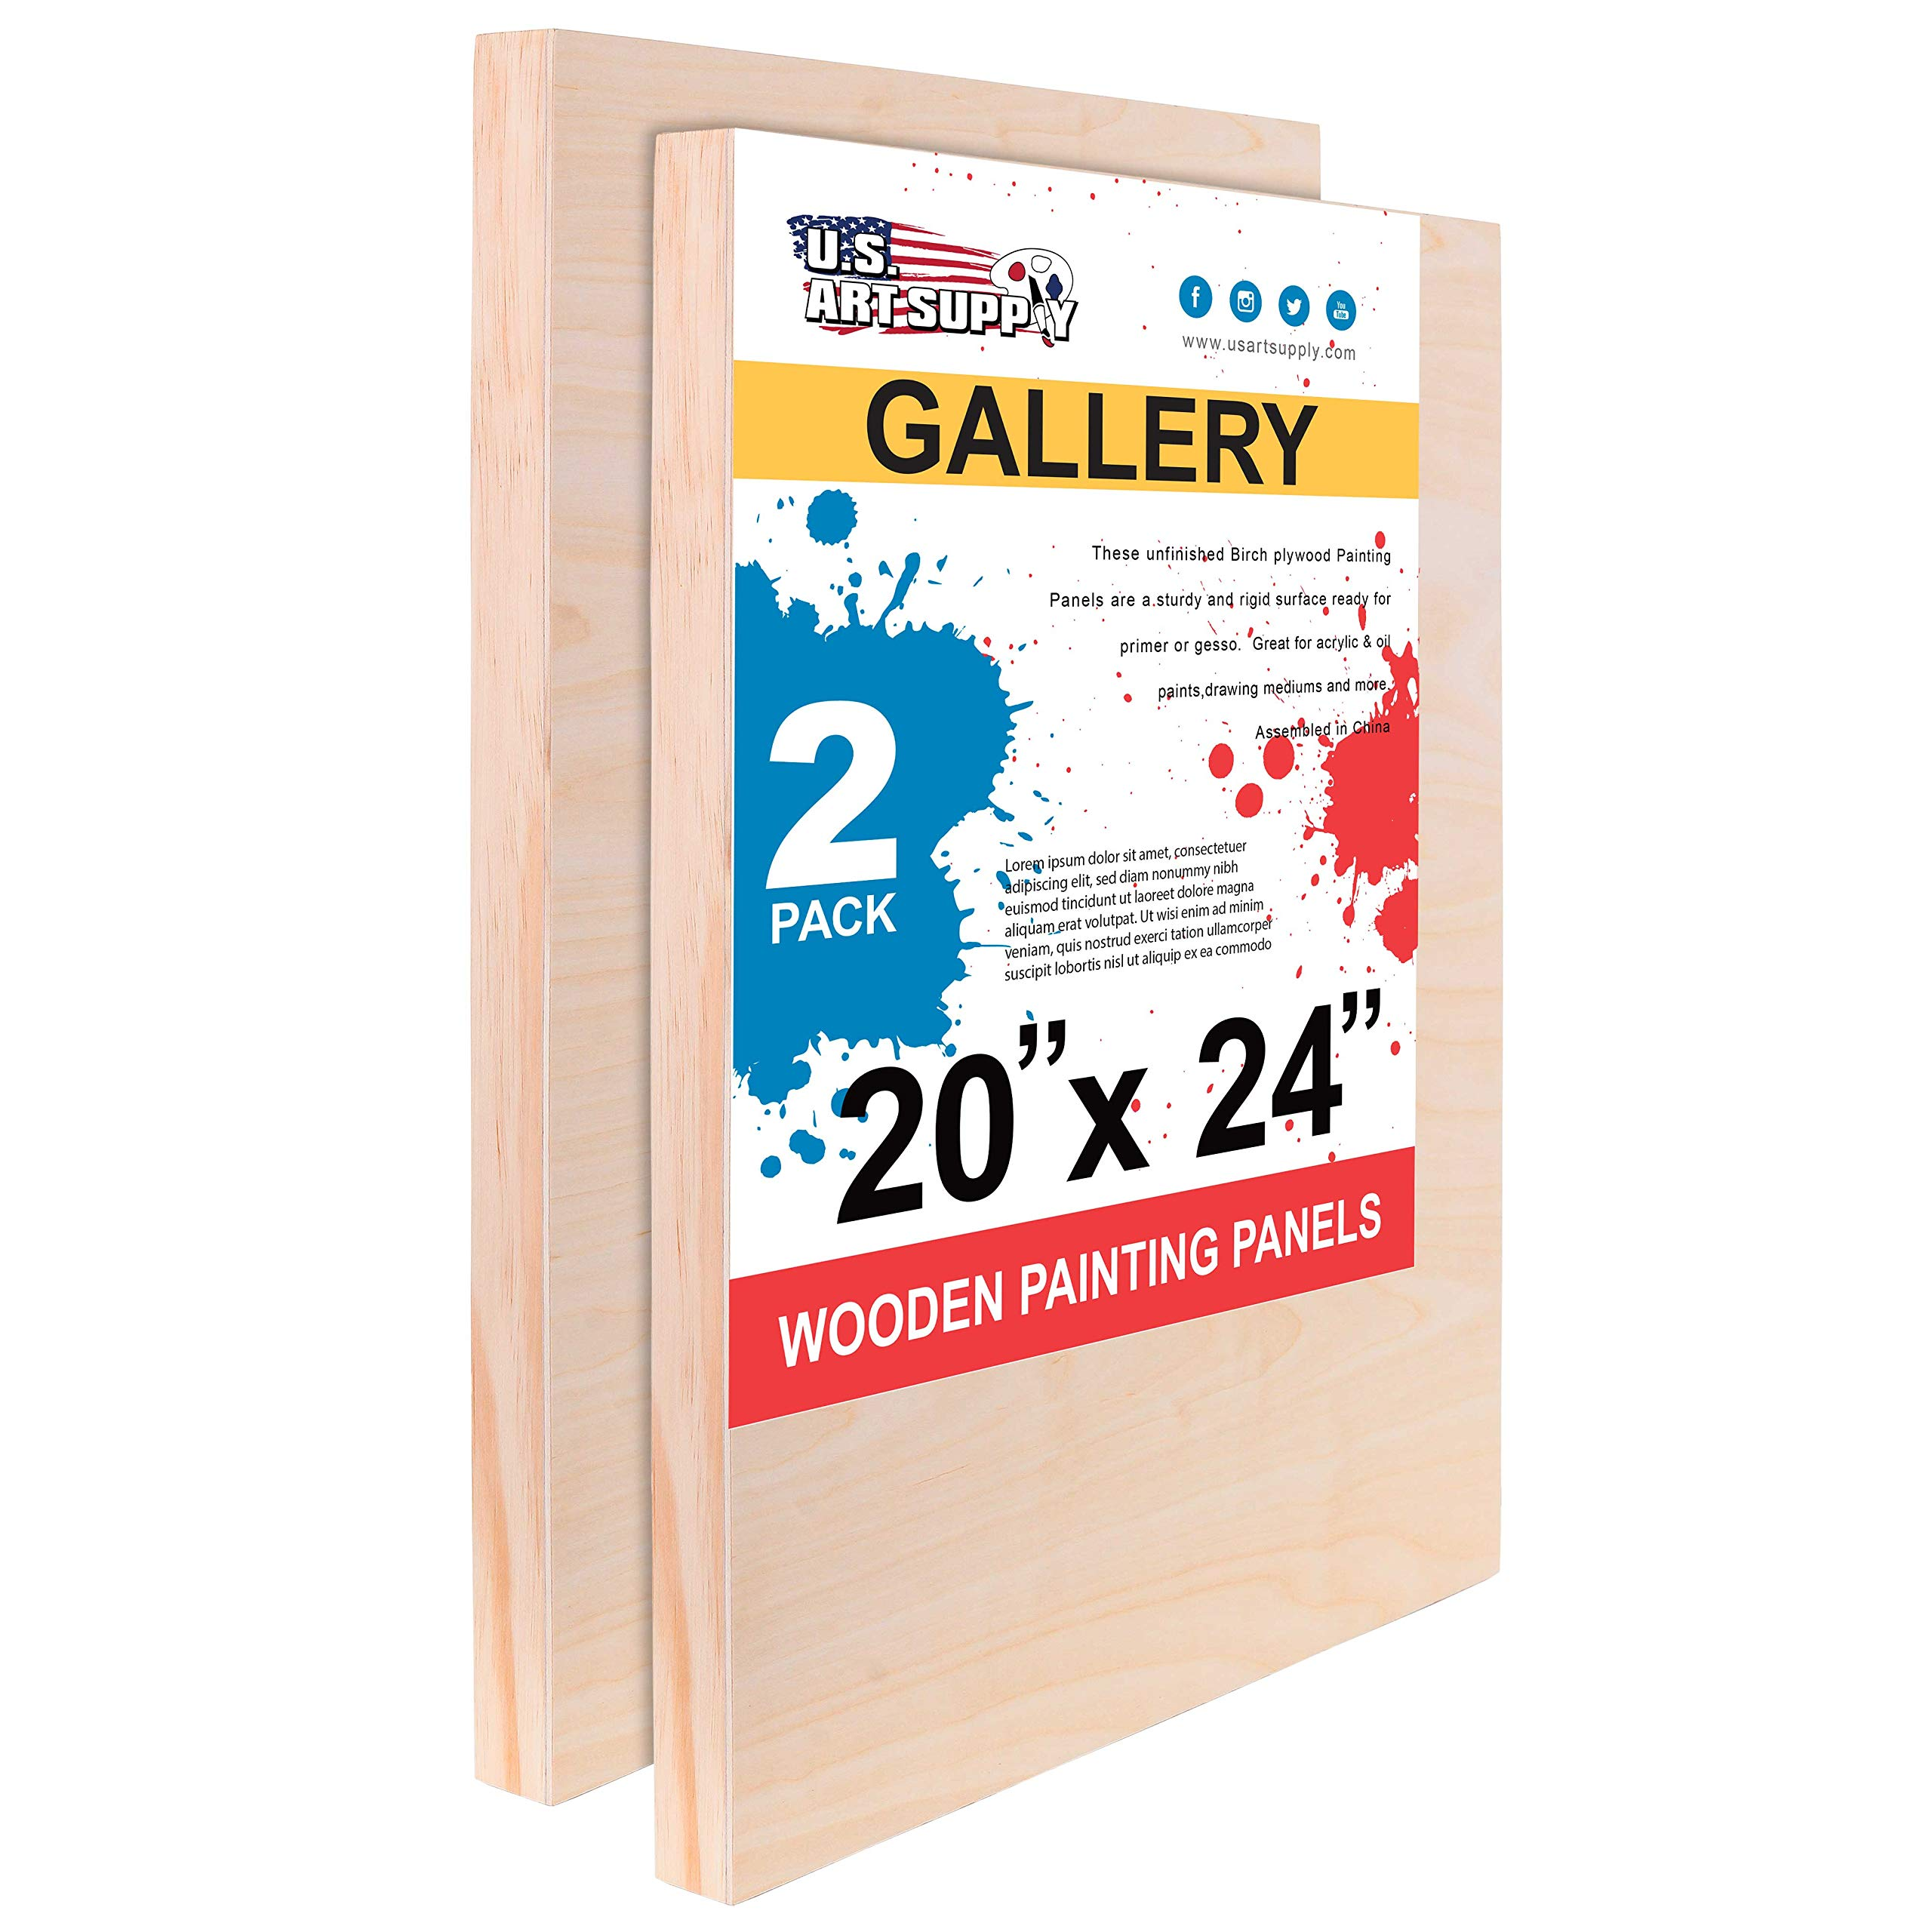 U.S. Art Supply 20'' x 24'' Birch Wood Paint Pouring Panel Boards, Gallery 1-1/2'' Deep Cradle (Pack of 2) - Artist Depth Wooden Wall Canvases - Painting Mixed-Media Craft, Acrylic, Oil, Encaustic by U.S. Art Supply